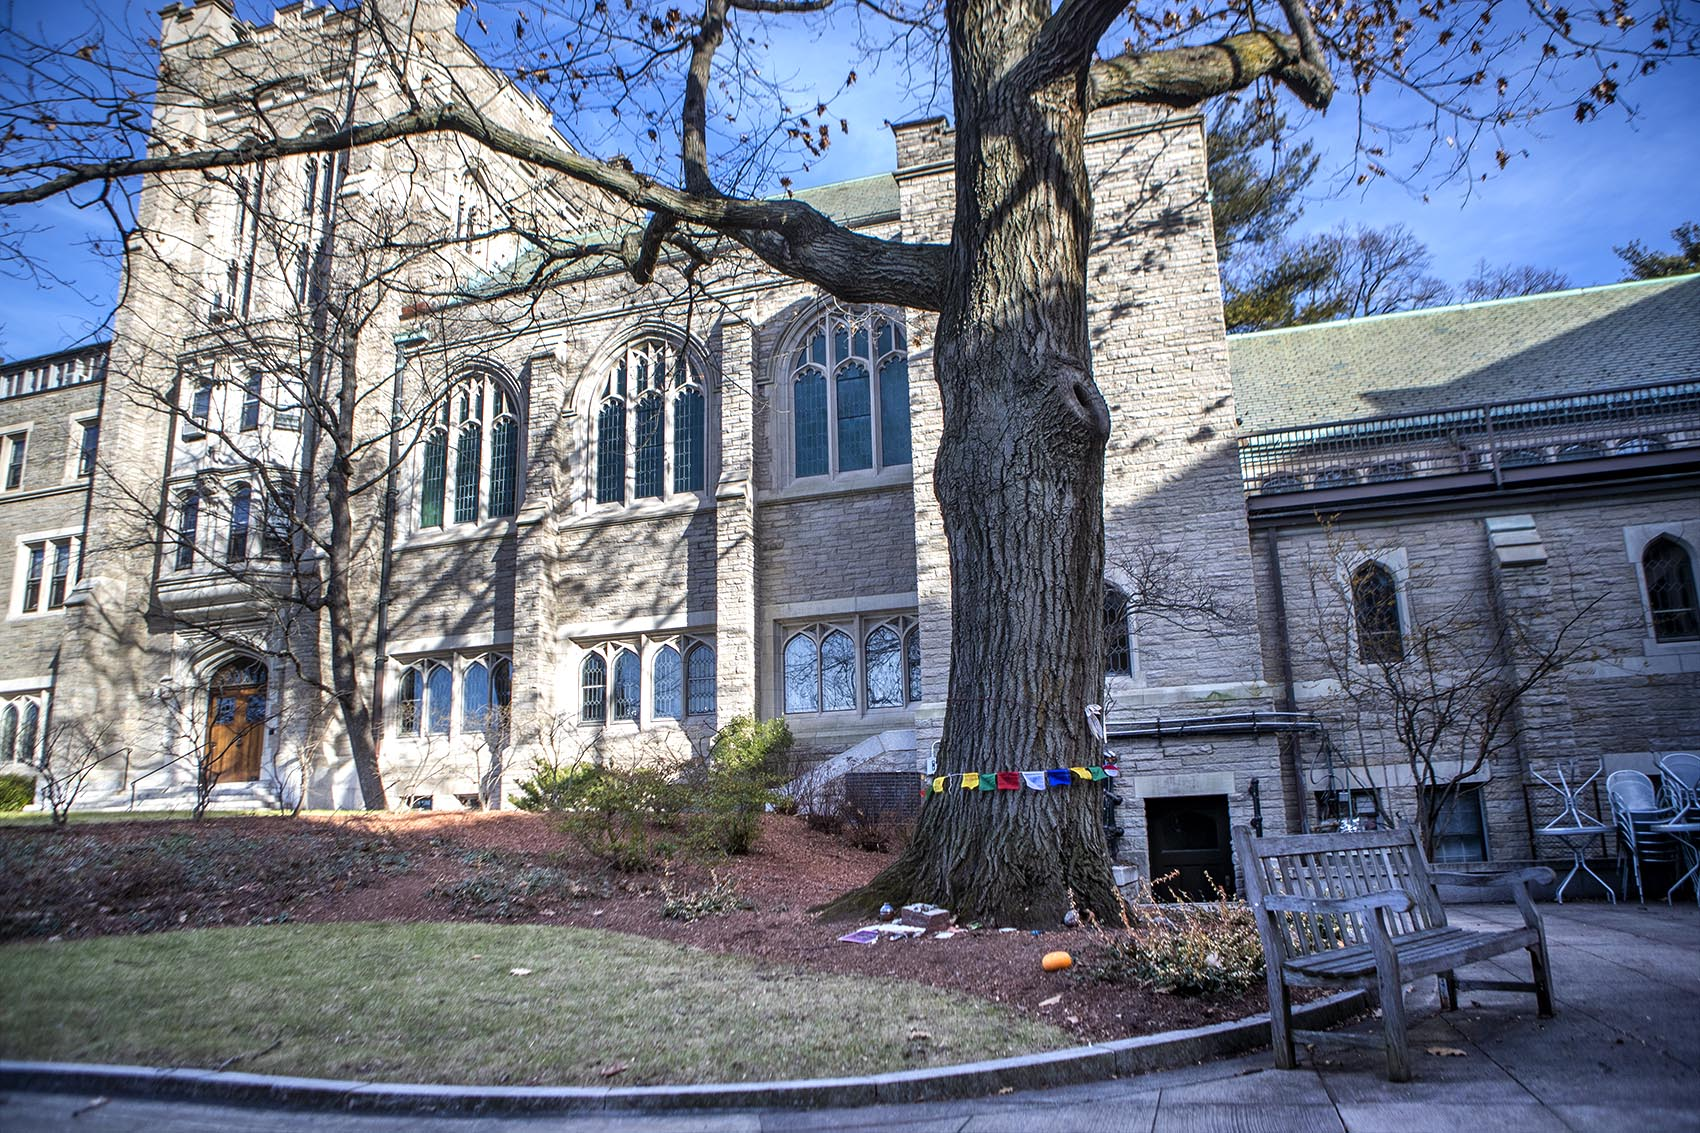 The large red oak tree is at the center of a debate at the Harvard Divinity School. The tree is slated for removal to make room to renovate and expand Andover Hall. (Jesse Costa/WBUR)